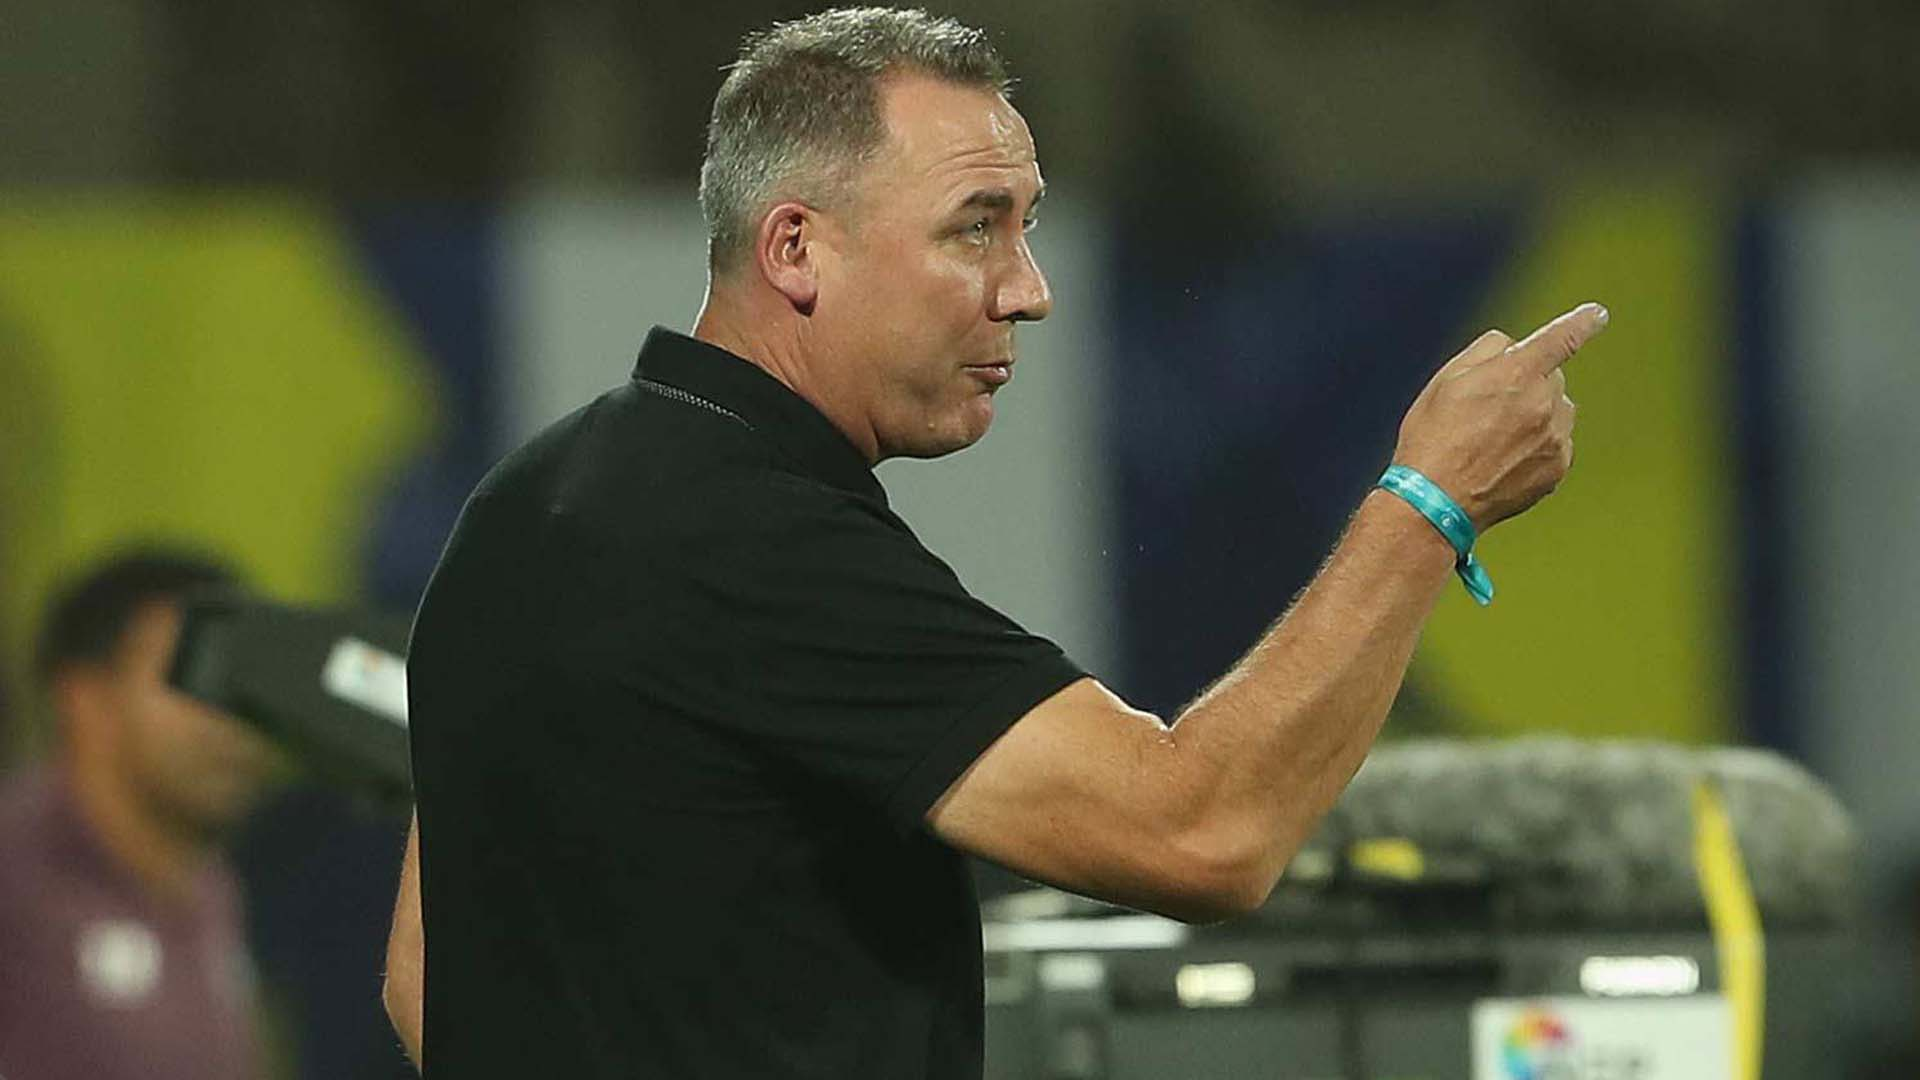 ISL 2017: Kerala Blasters' Rene Meulensteen - Winning is the best medicine